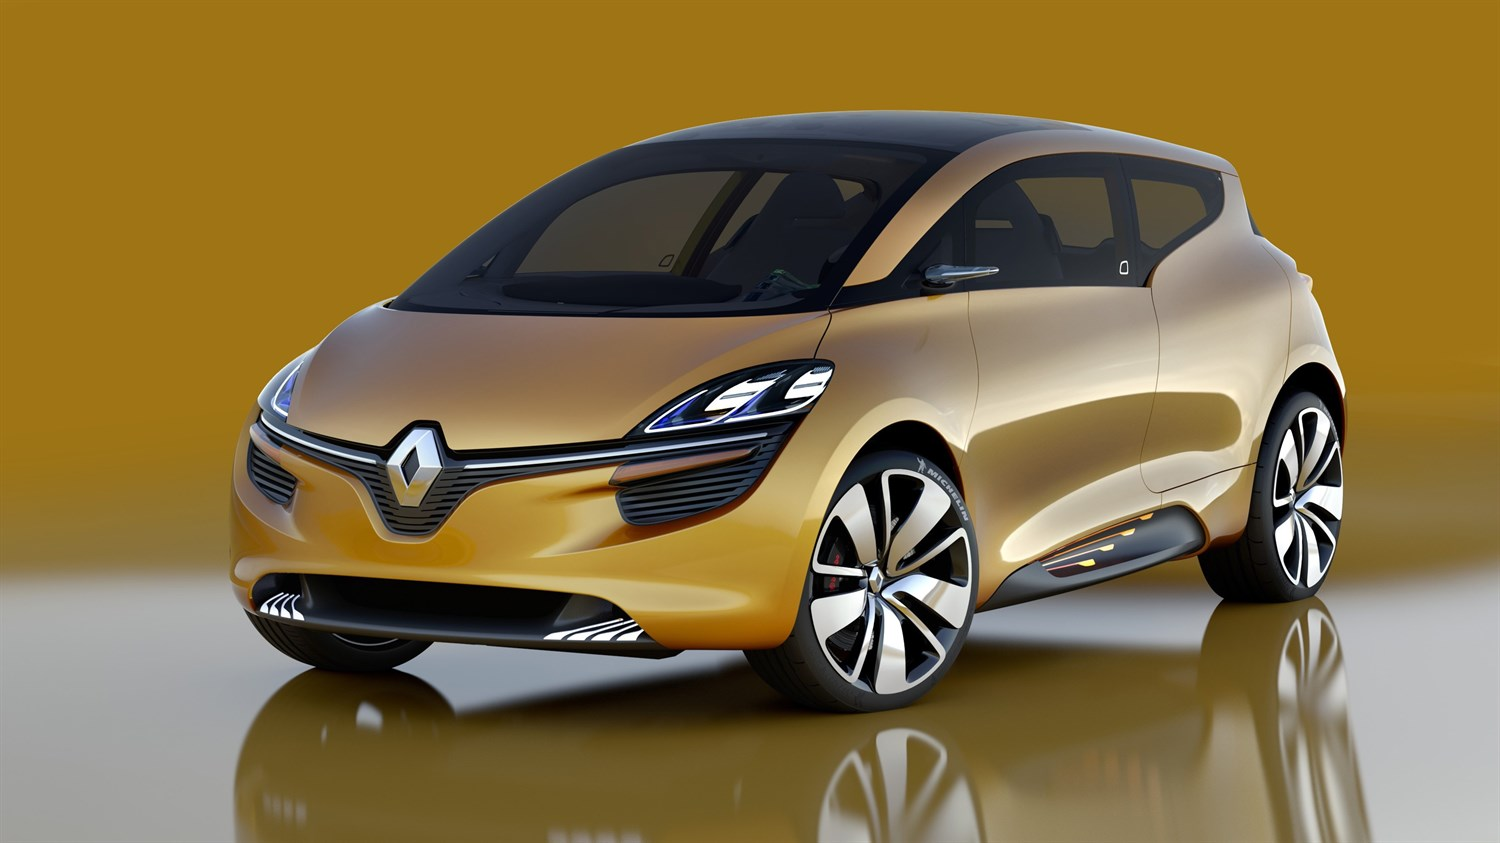 Renault R-Space concept car exterior design front side view